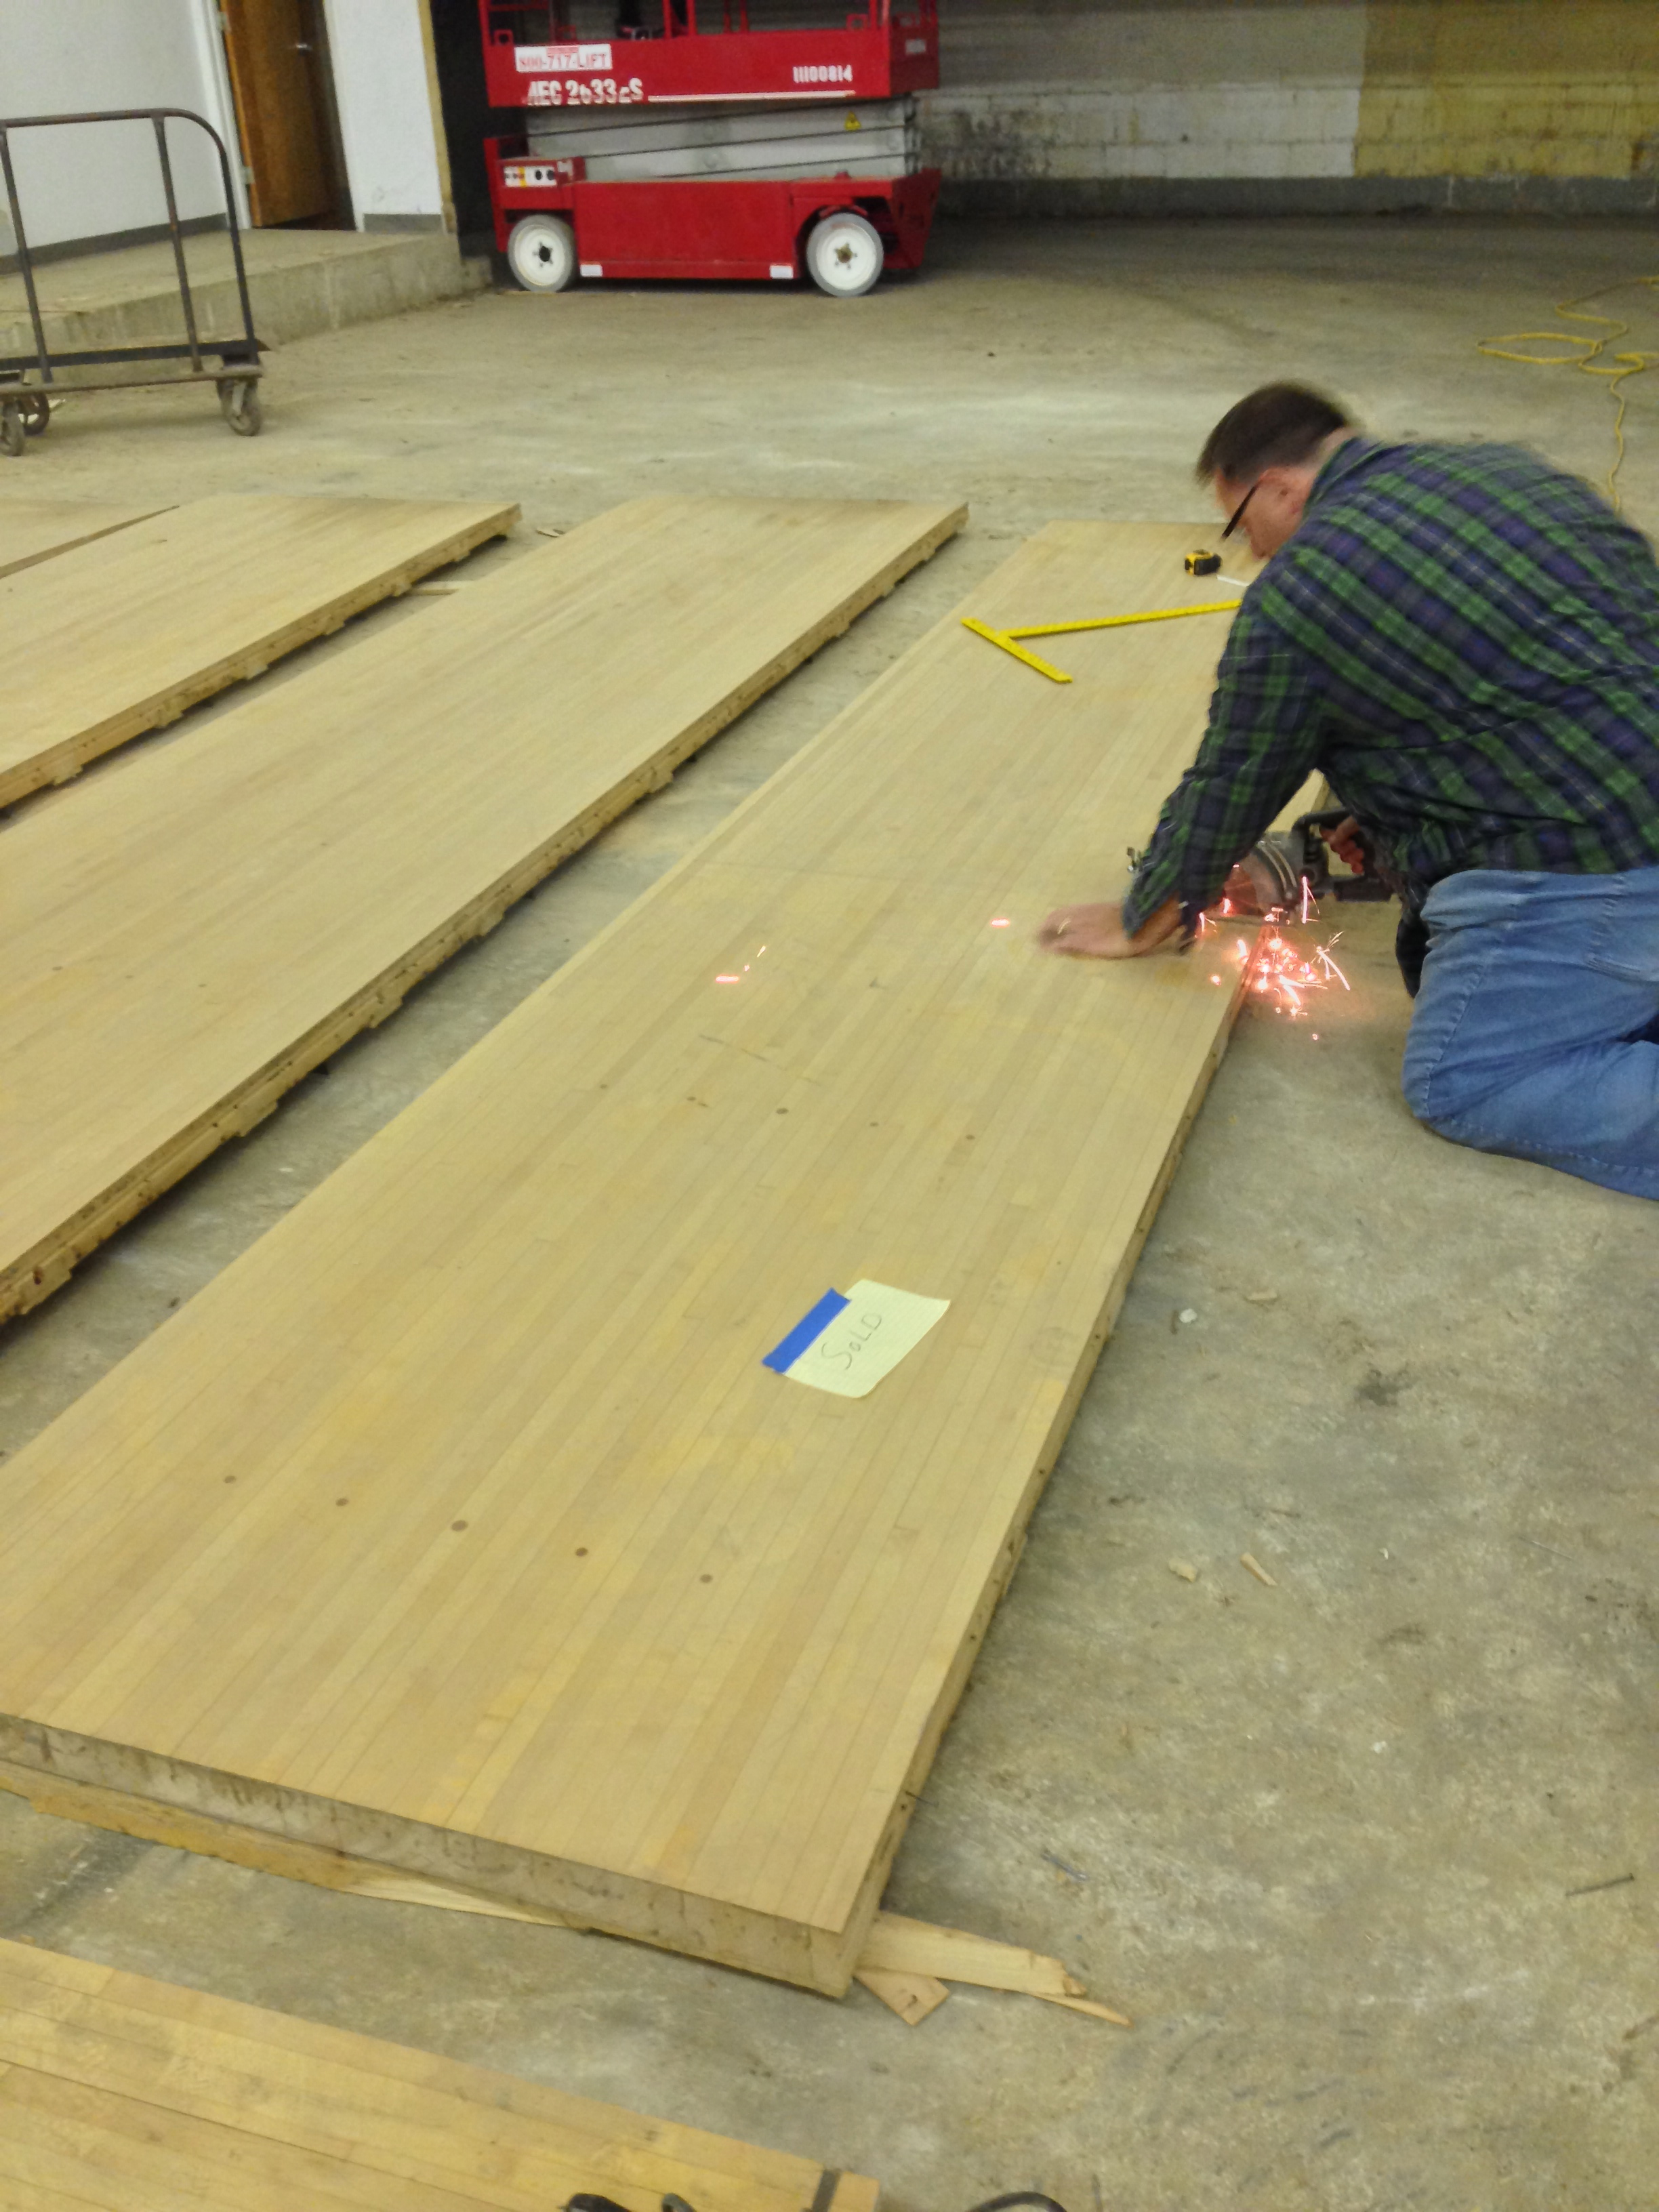 """After searching on Craigslist I managed to score an entire 16' length of rock maple previously used as a bowling lane. This wood is 2.5"""" thick and weighed over 700lbs. Can you say """"ultimate workbench!?"""""""